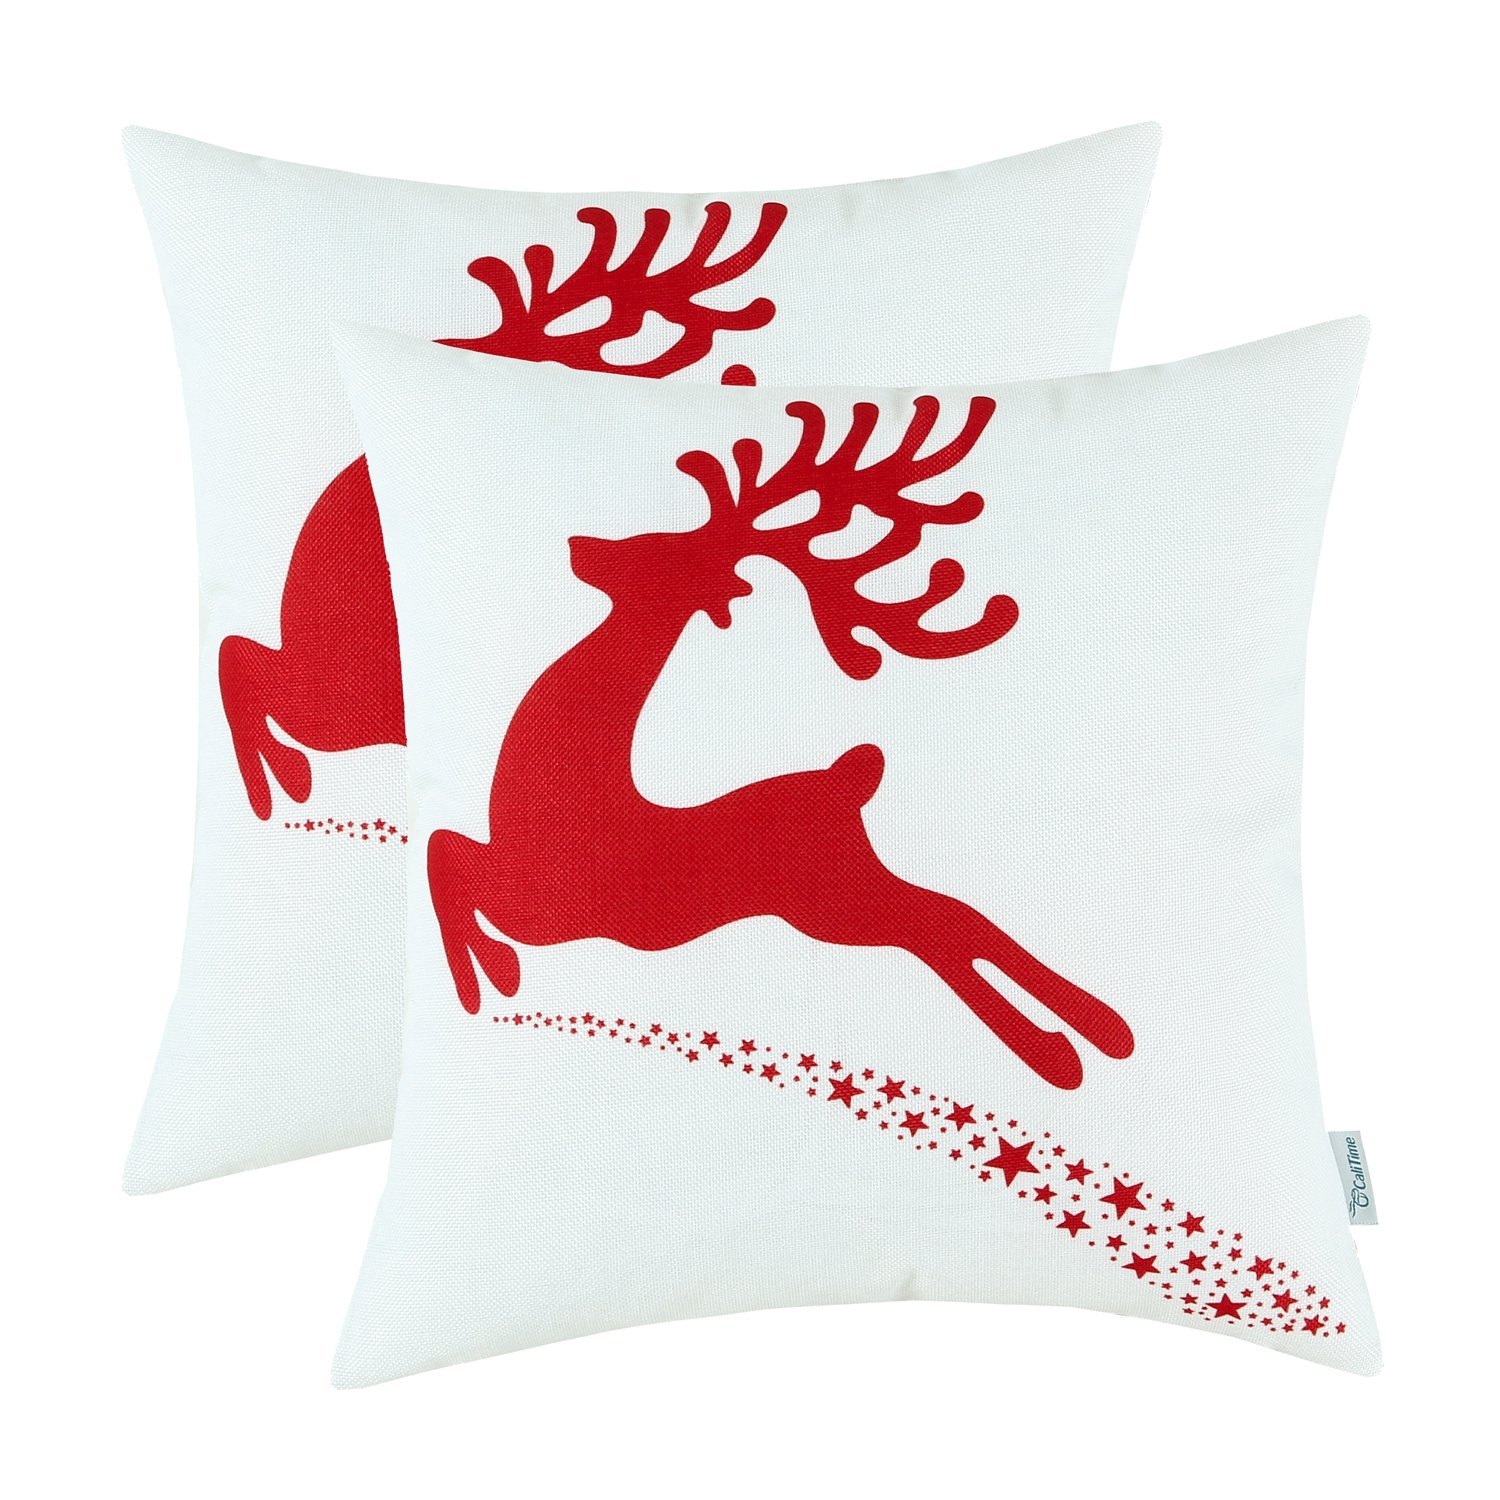 Pack of 2 CaliTime Throw Pillow Covers 18 X 18 Inches, Christmas Holiday Reindeer, Red